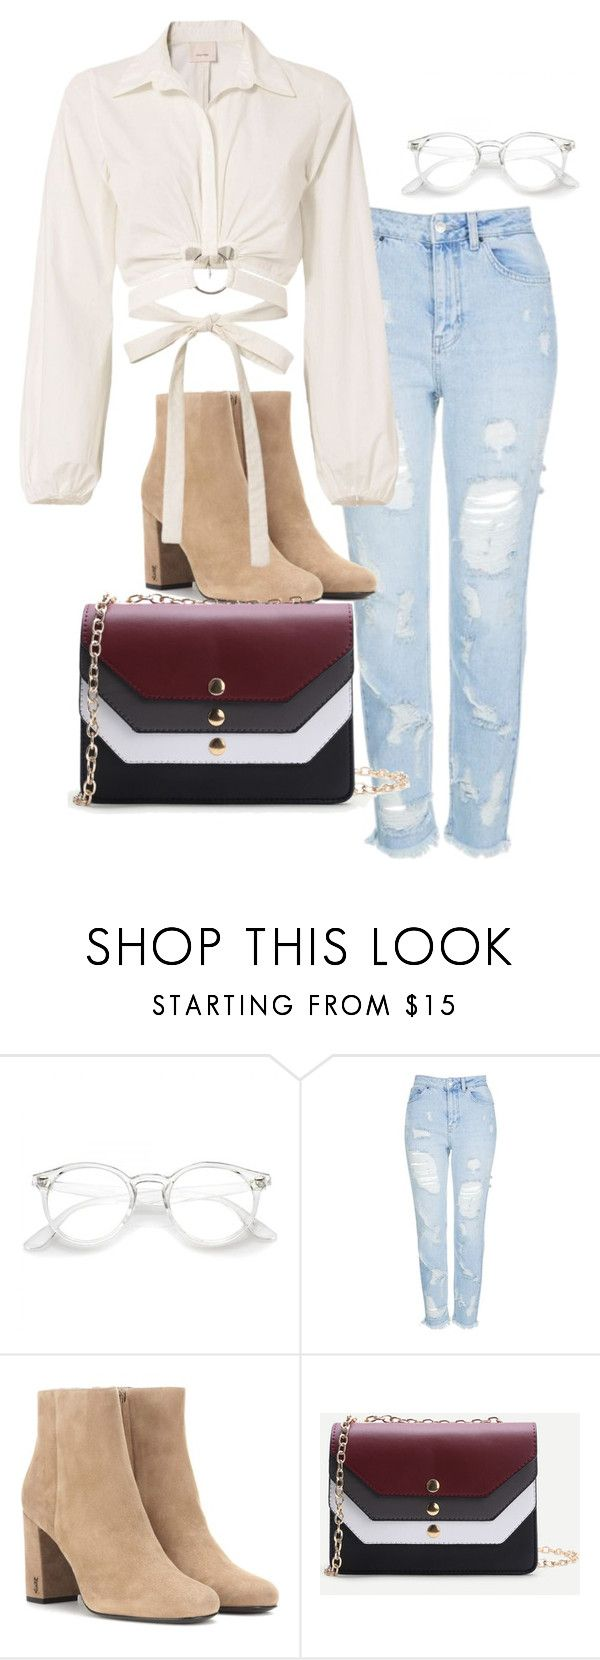 Untitled #52 by nicole-perestrelo21 on Polyvore featuring Cinq à Sept, Topshop and Yves Saint Laurent